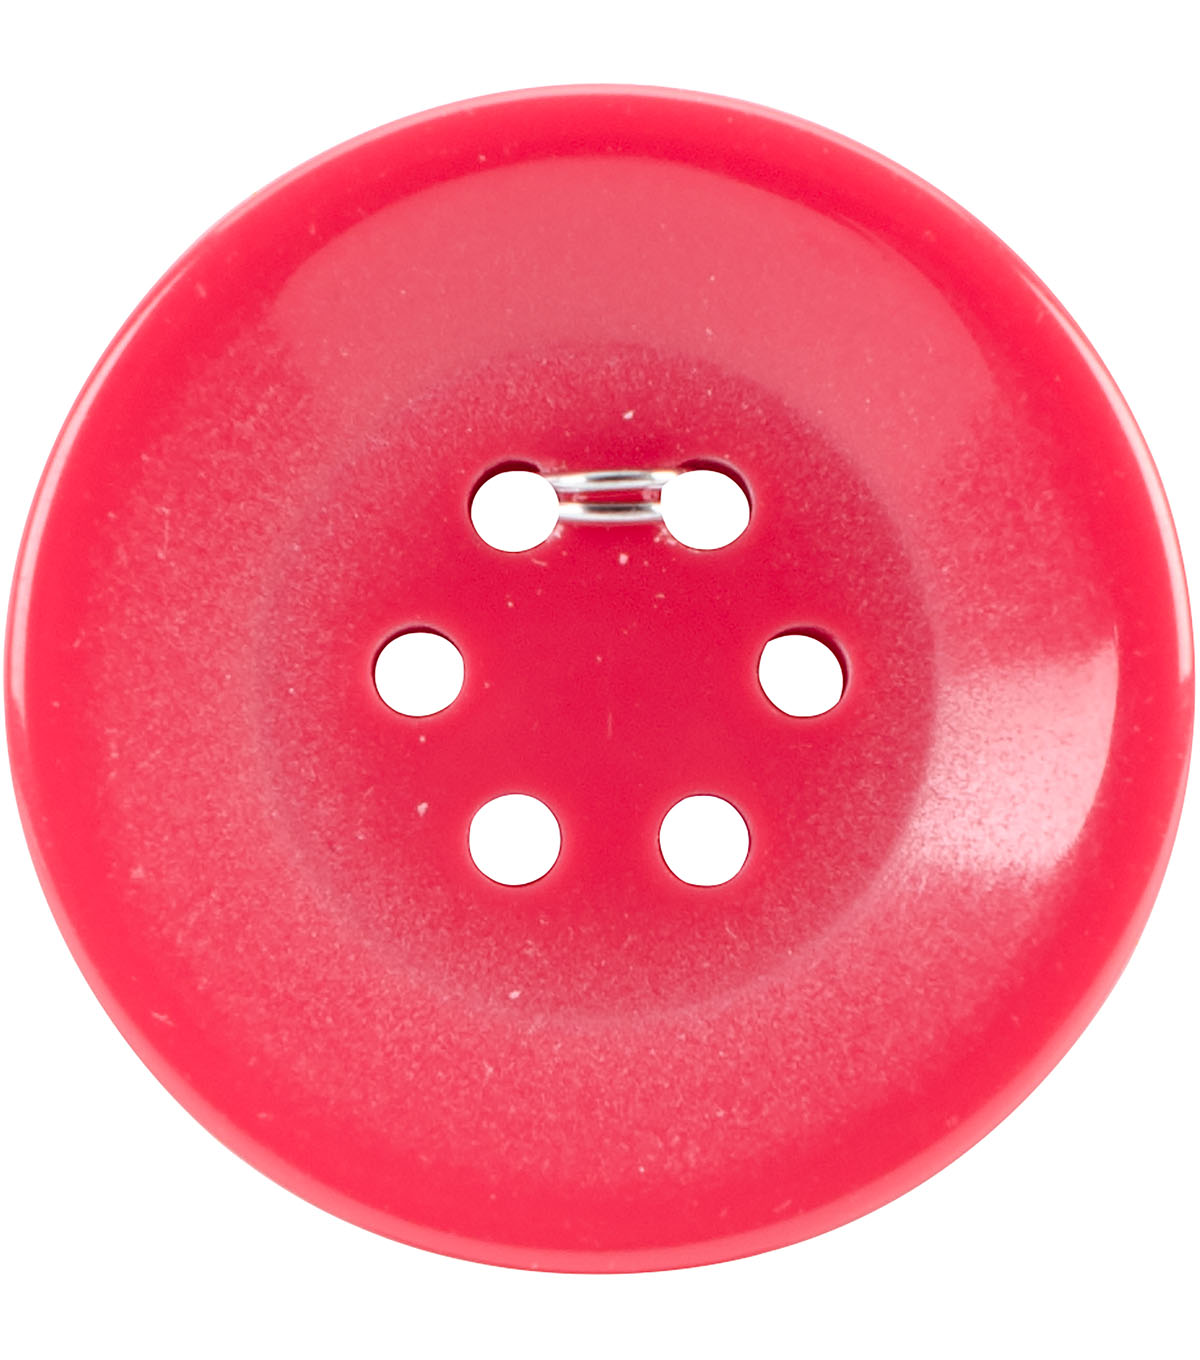 Crafting with Buttons 2 pk Small 6 Hole Buttons-Red